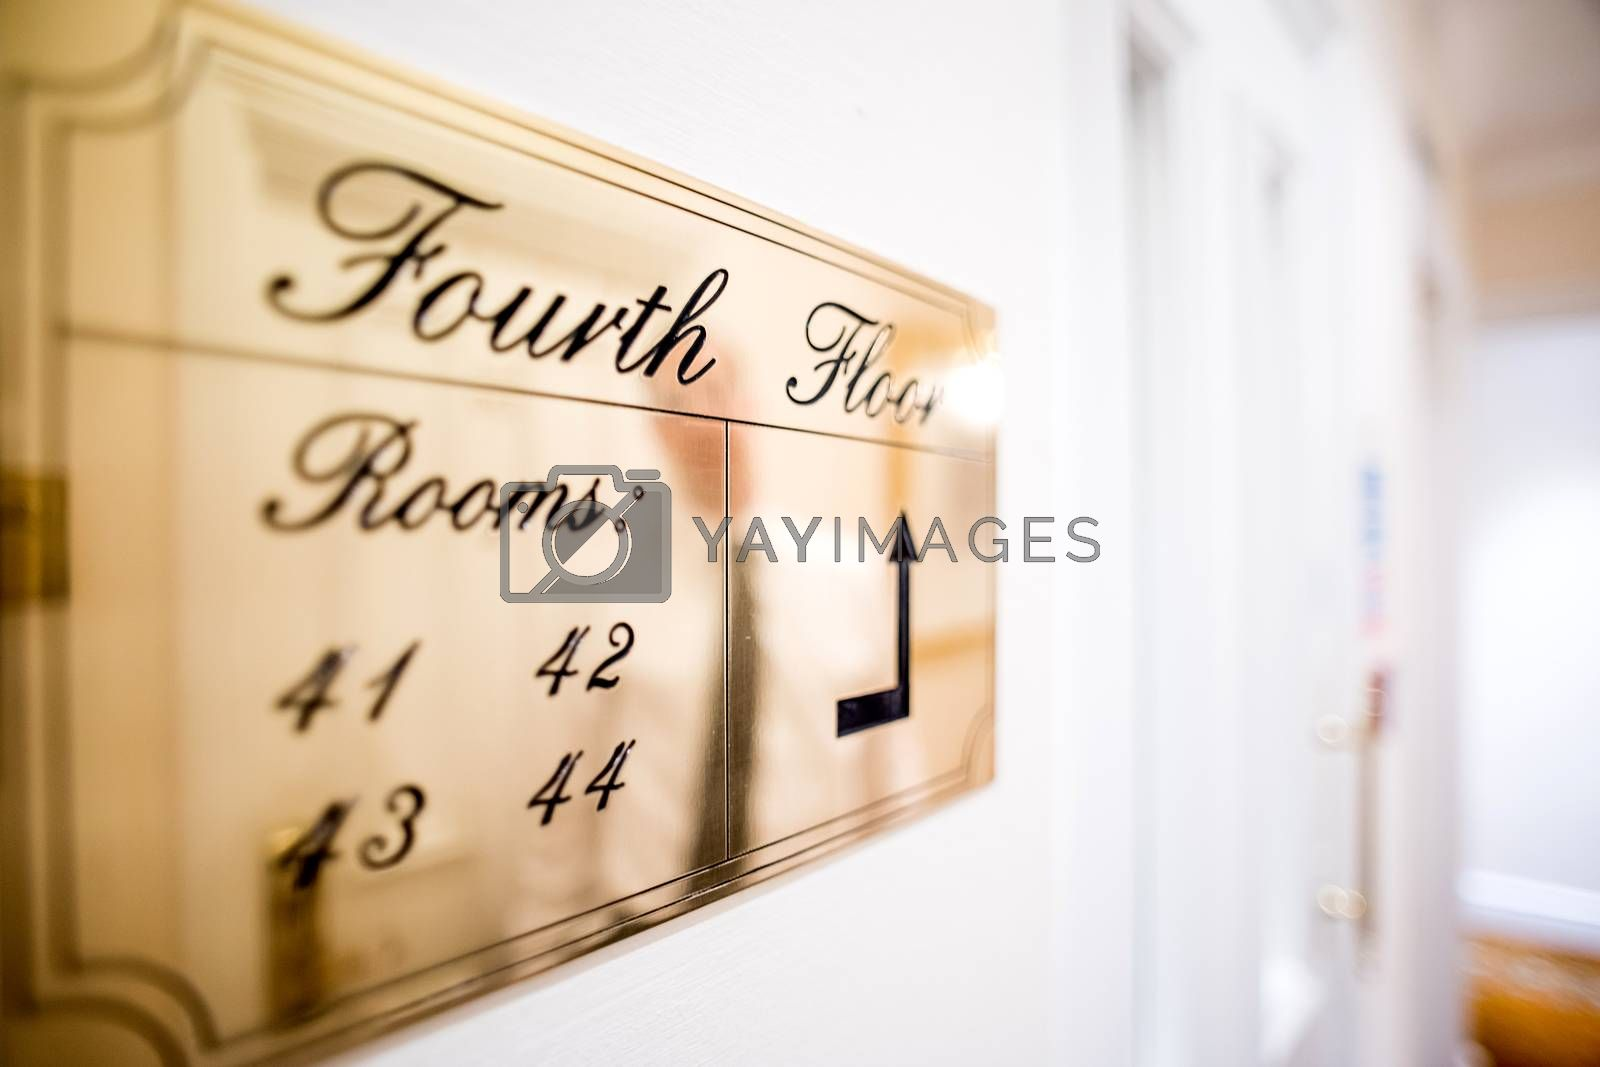 Travel image of a hotel corridor  by stockyimages